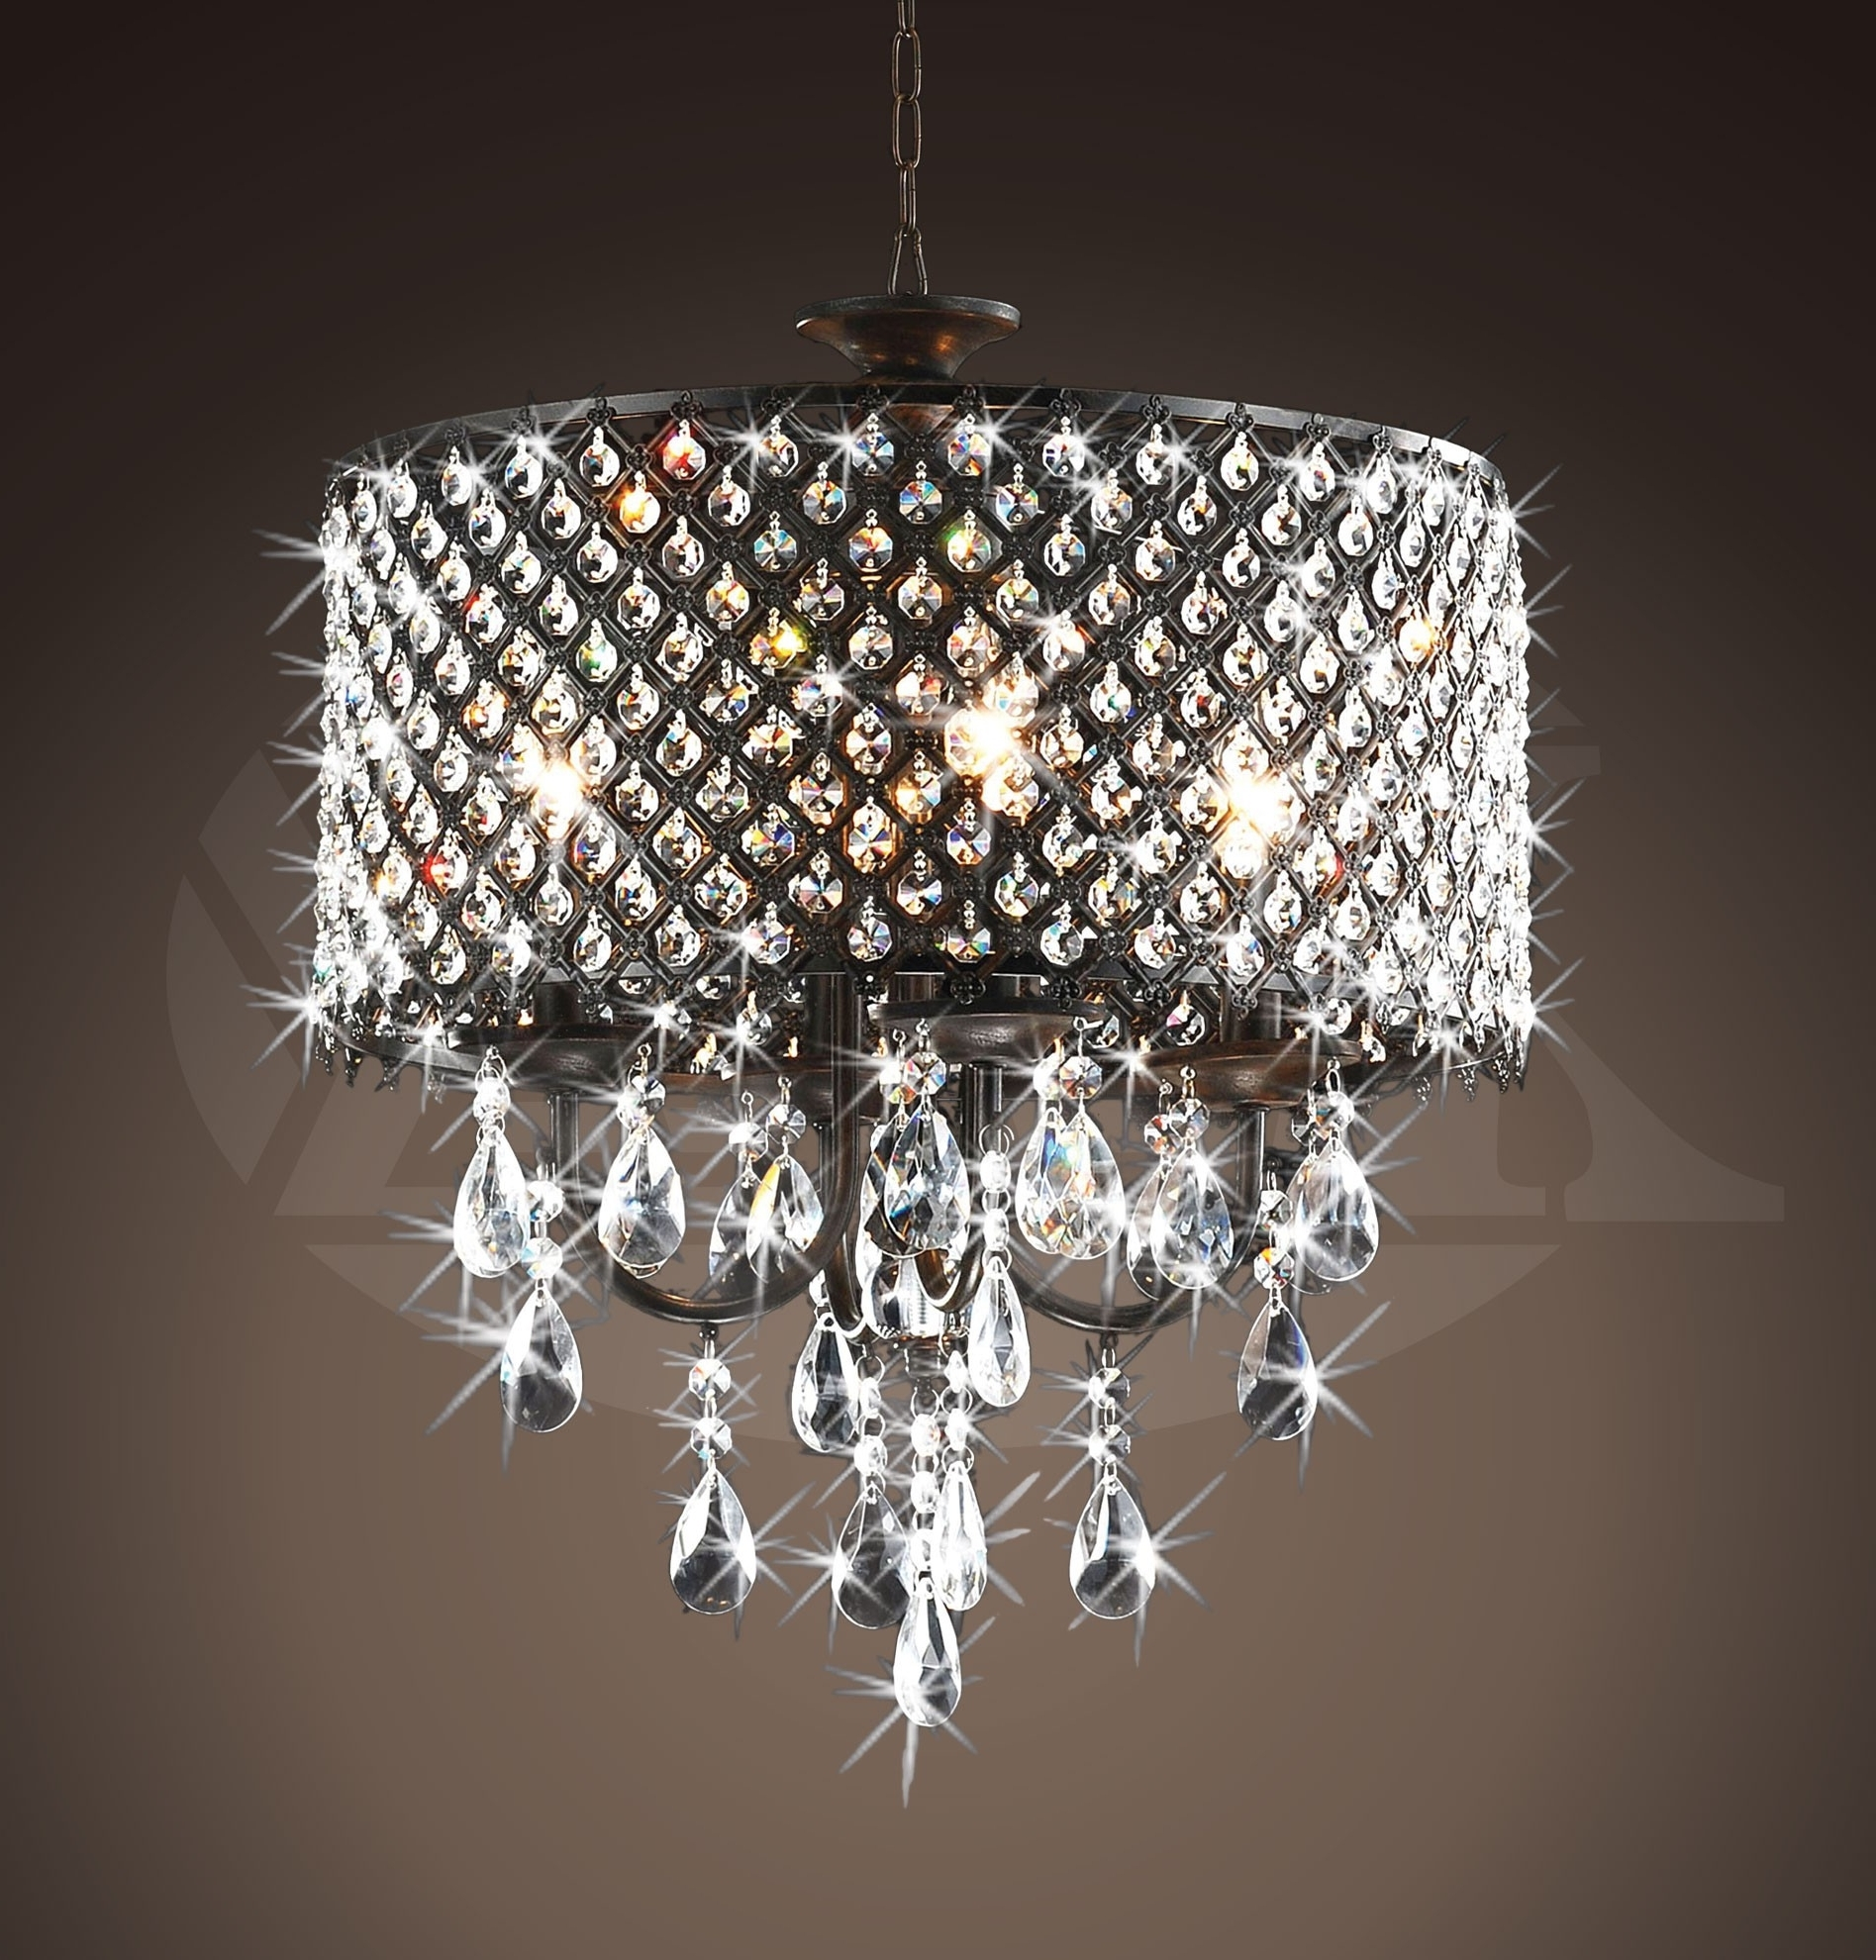 Widely Used Antique Style Chandeliers For Light : Cristal Chandelier Rachelle Light Round Antique Bronze Brass (View 9 of 15)